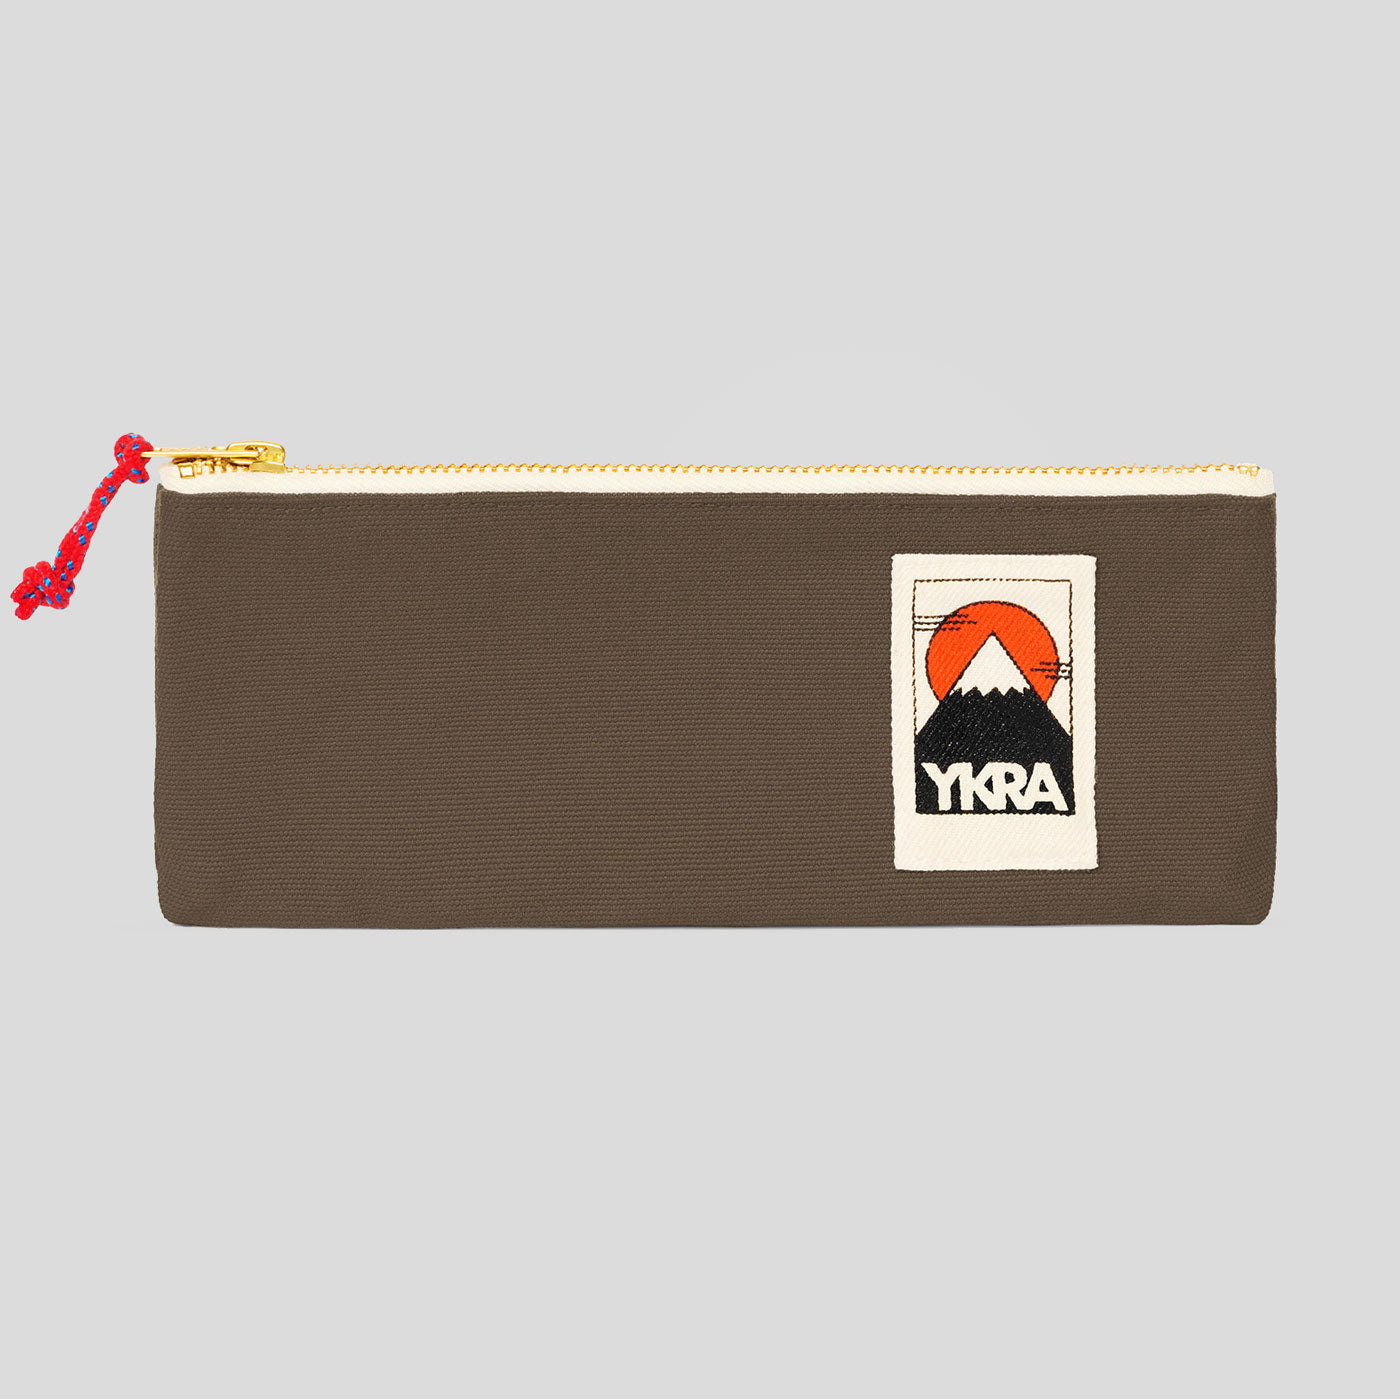 YKRA PENCIL CASE - KHAKI